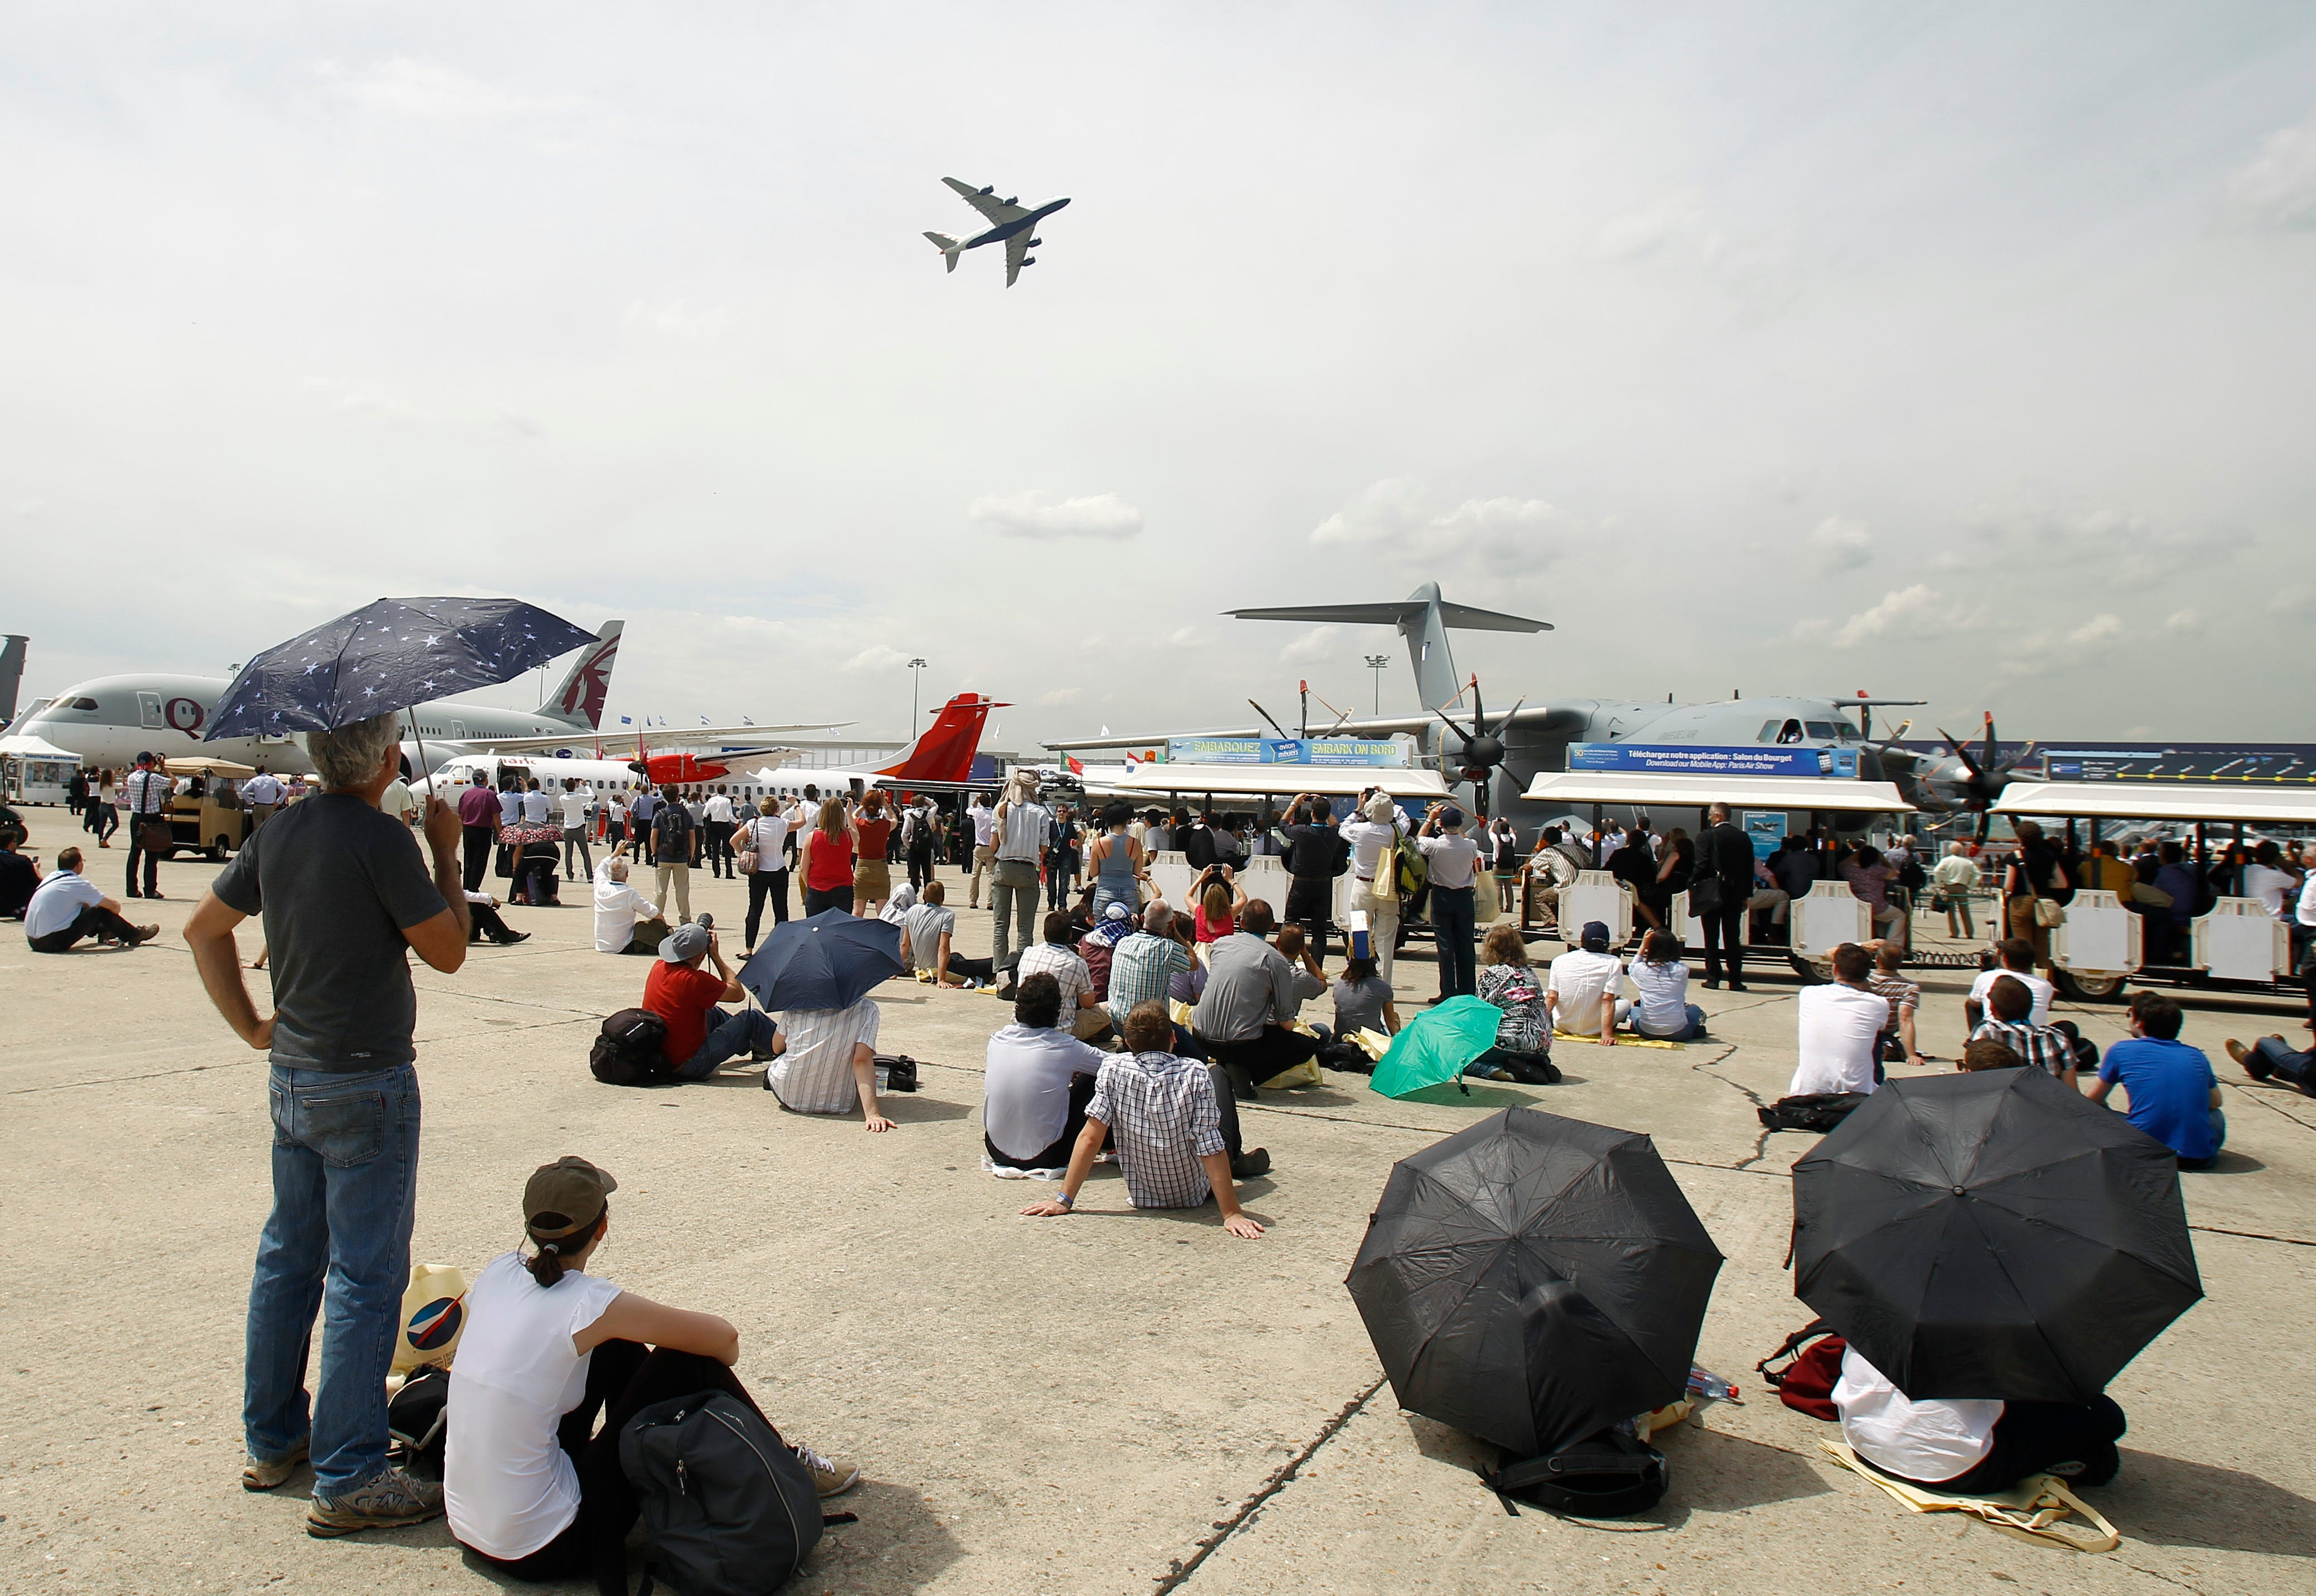 Http Www Usatoday Com Picture Gallery Travel Flights 2018 09 18